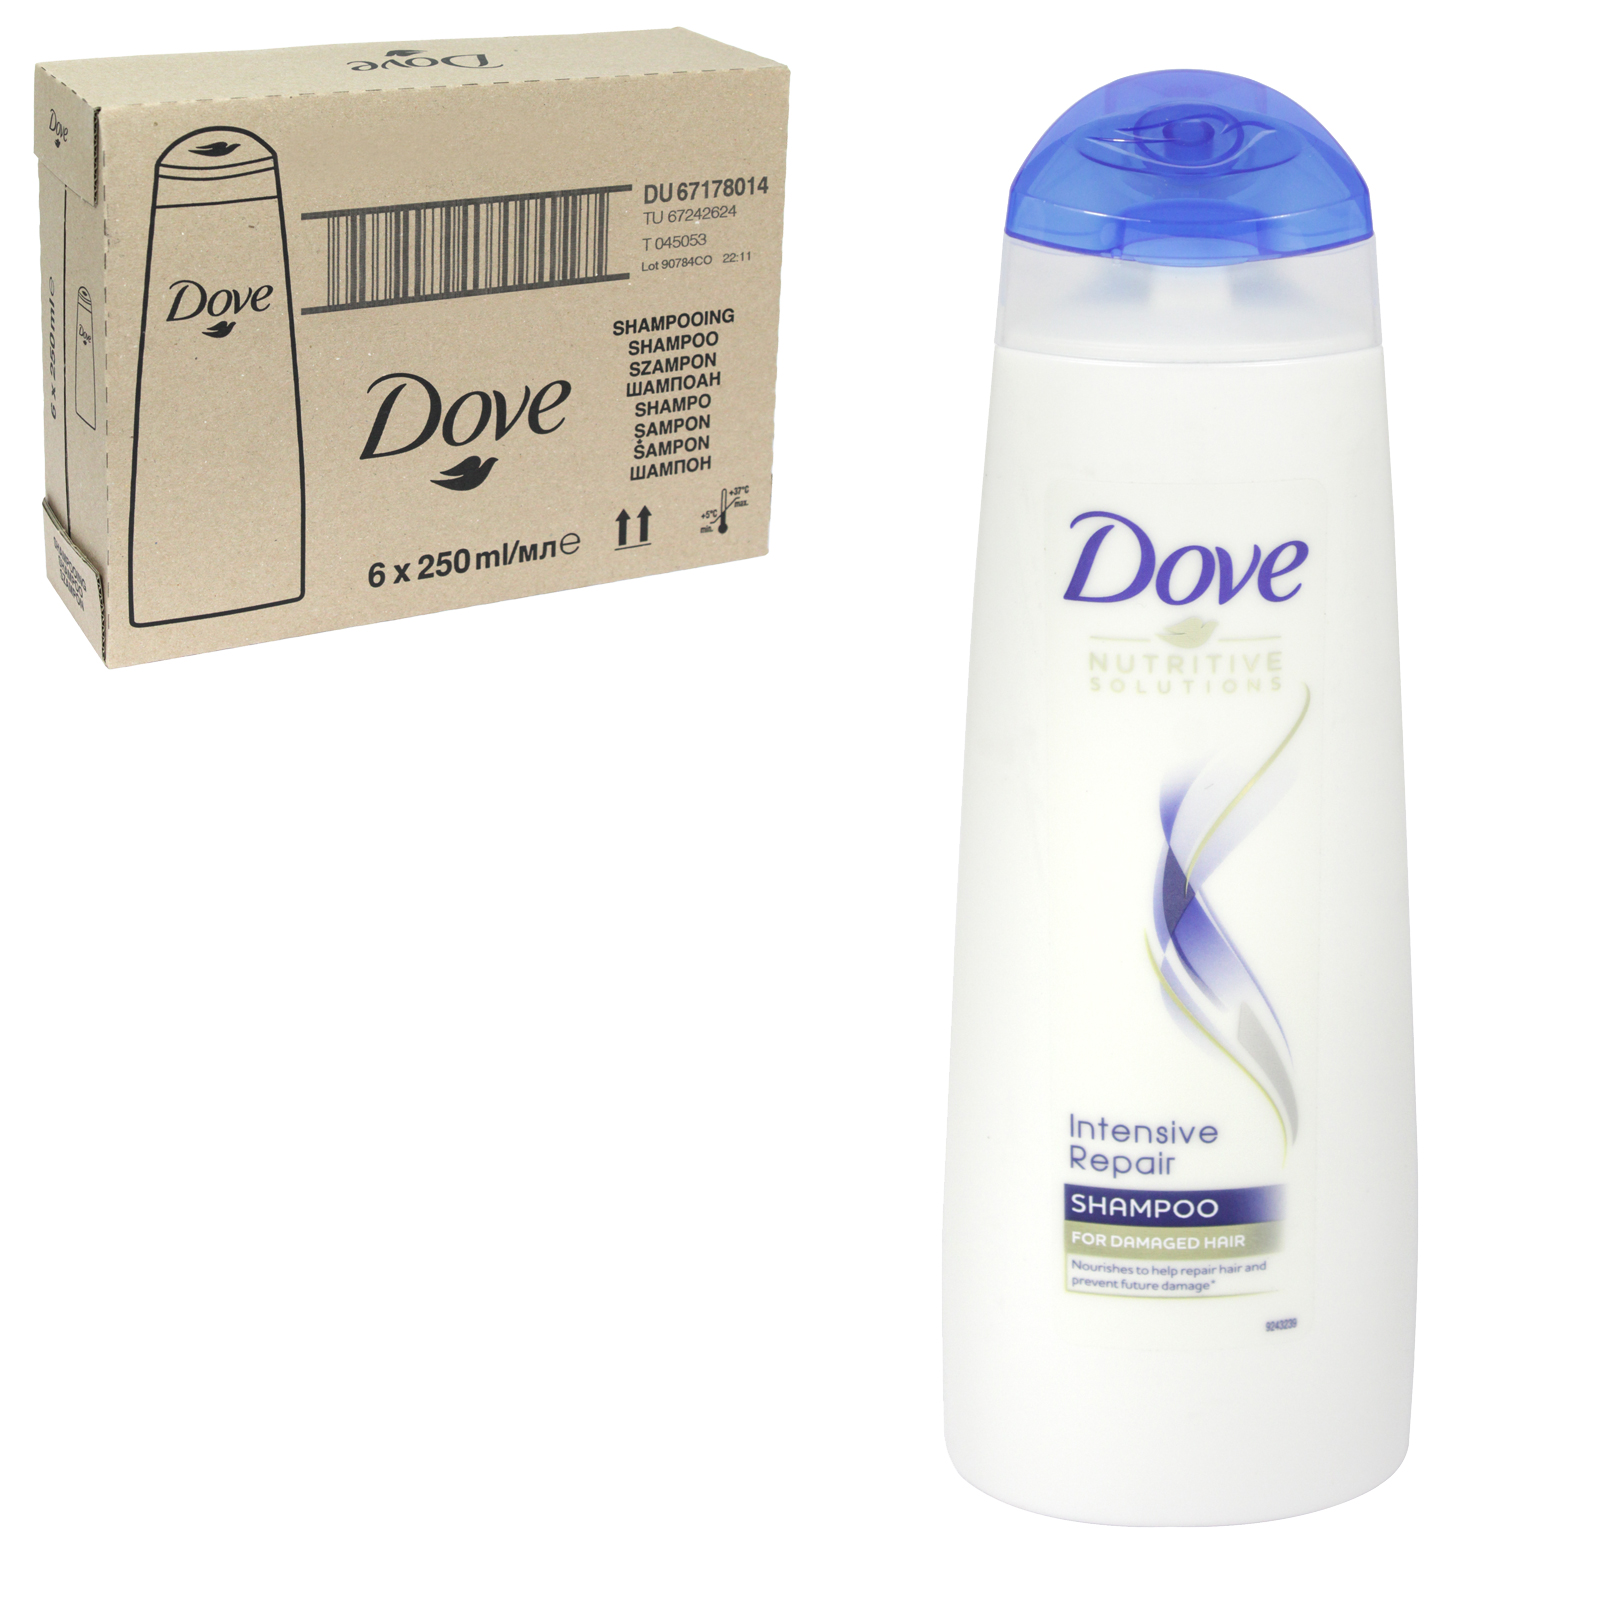 DOVE SHAMPOO 250ML INTENSIVE REPAIR X 6